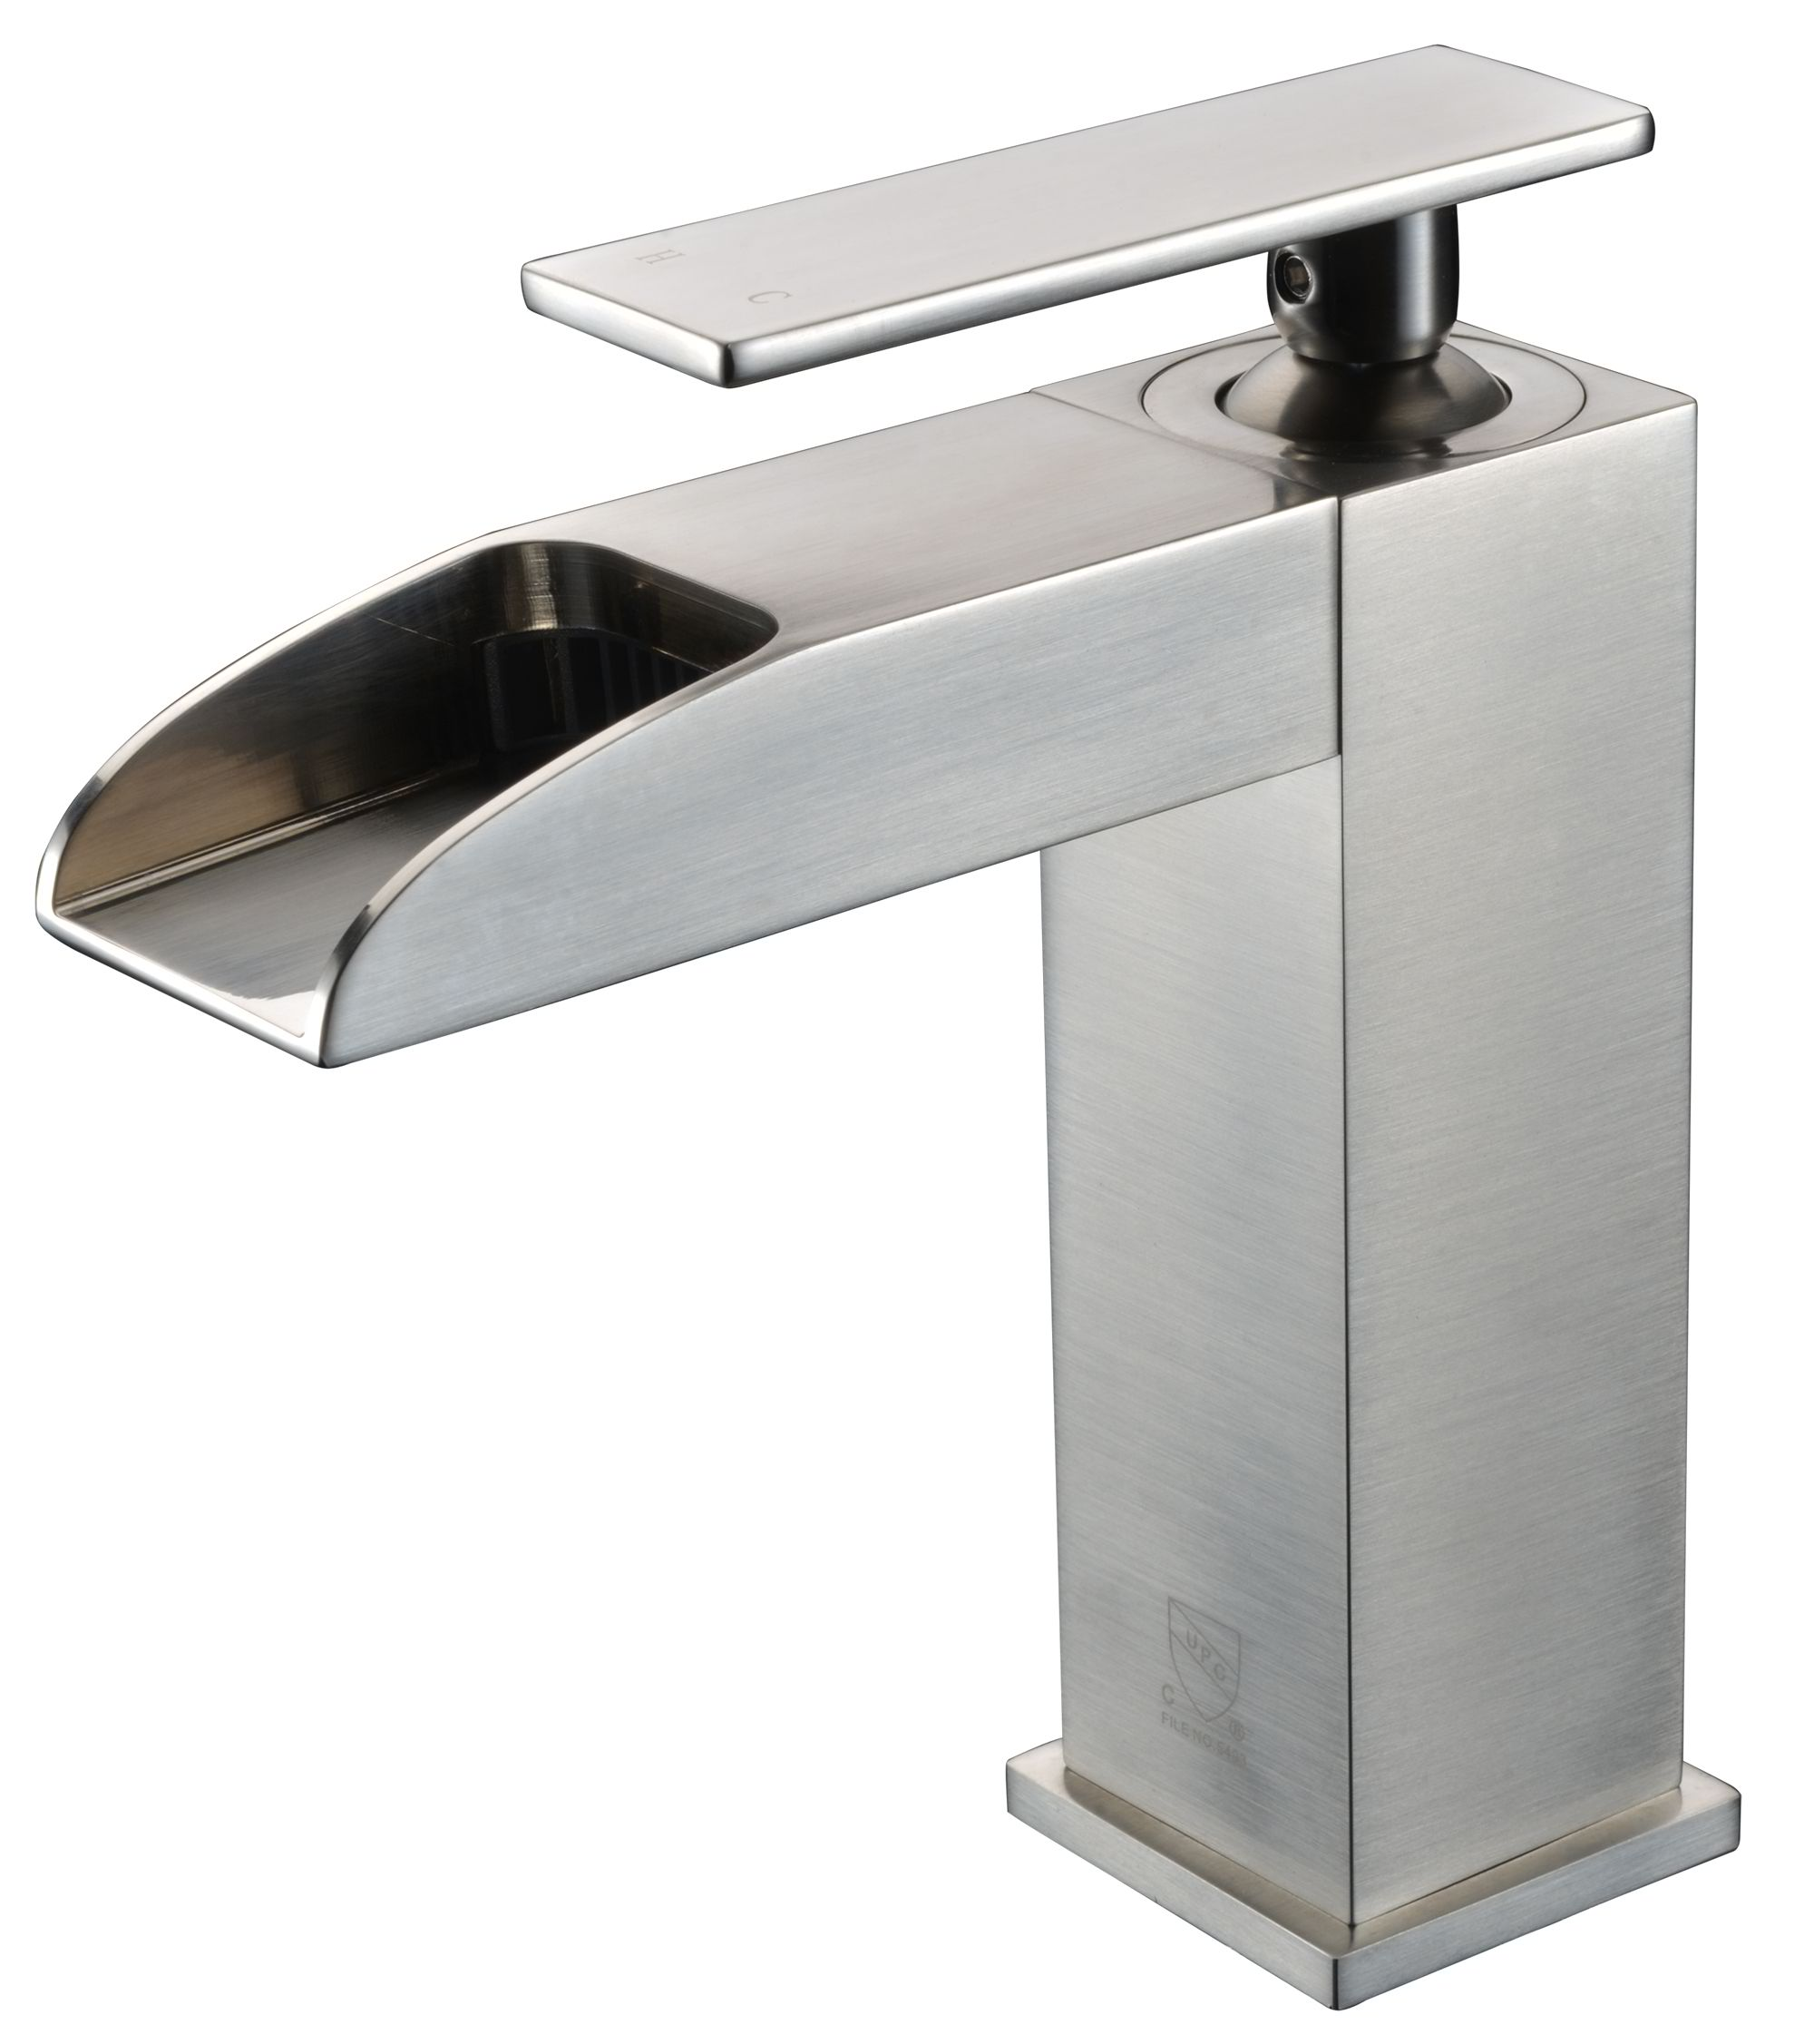 ALFI Brand AB1598 Brushed Nickel or Polished Chrome Single Hole Waterfall Bathroom Faucet